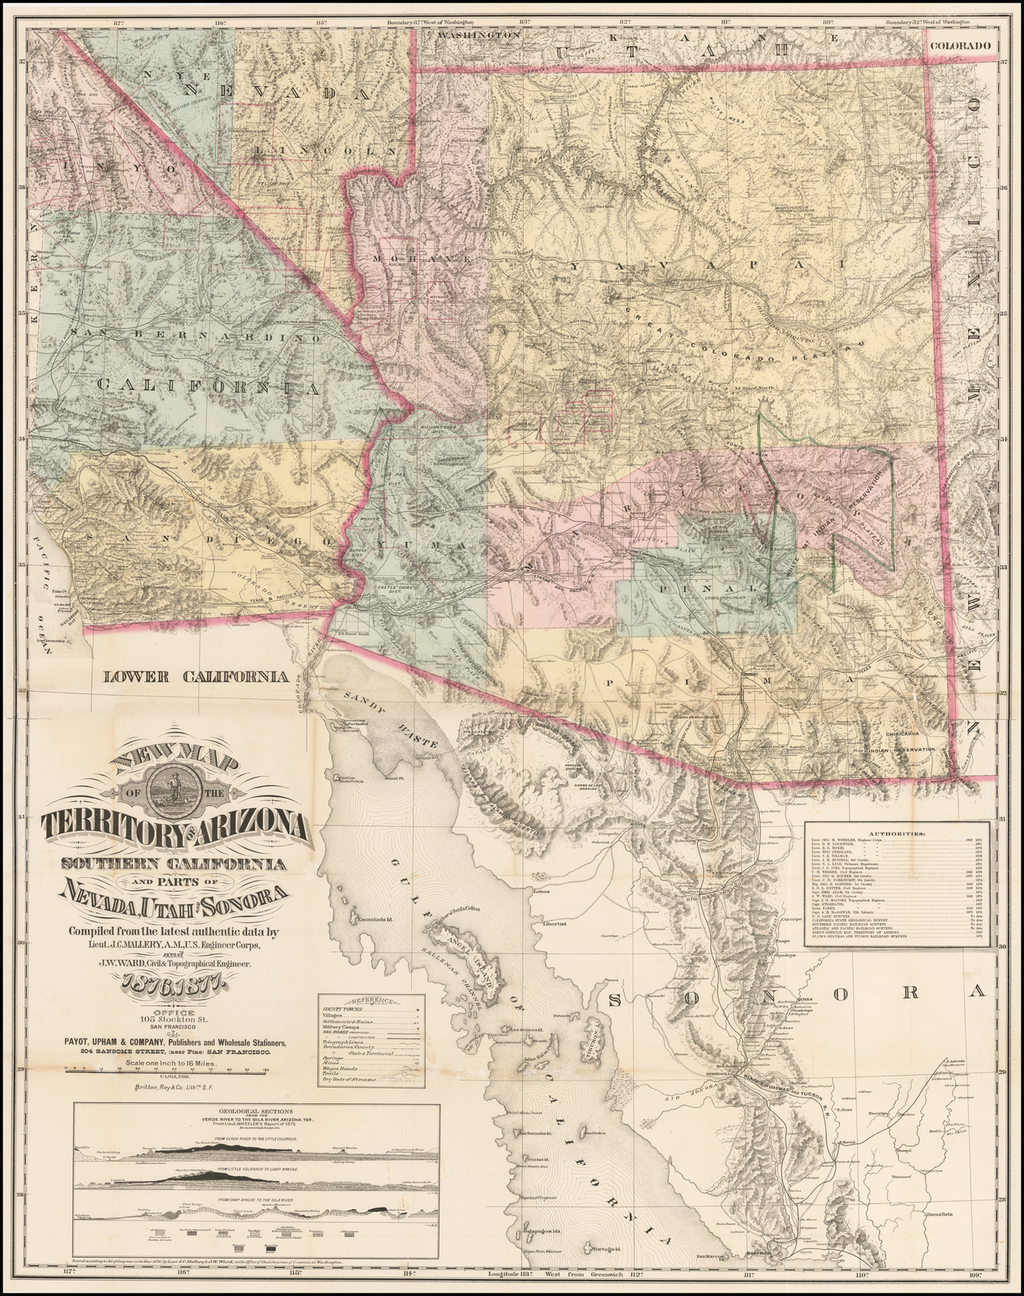 New Map of the Territory of Arizona Southern California and Parts of Nevada, Utah and Sonora Compiled from the latest authentic data by Lietenant J.C. Mallery, A.M., US. Engineers Corps, and J.W. Ward, Civil & Topographical Engineer.  1876-77 By J.C. Mallery / J.W. Ward